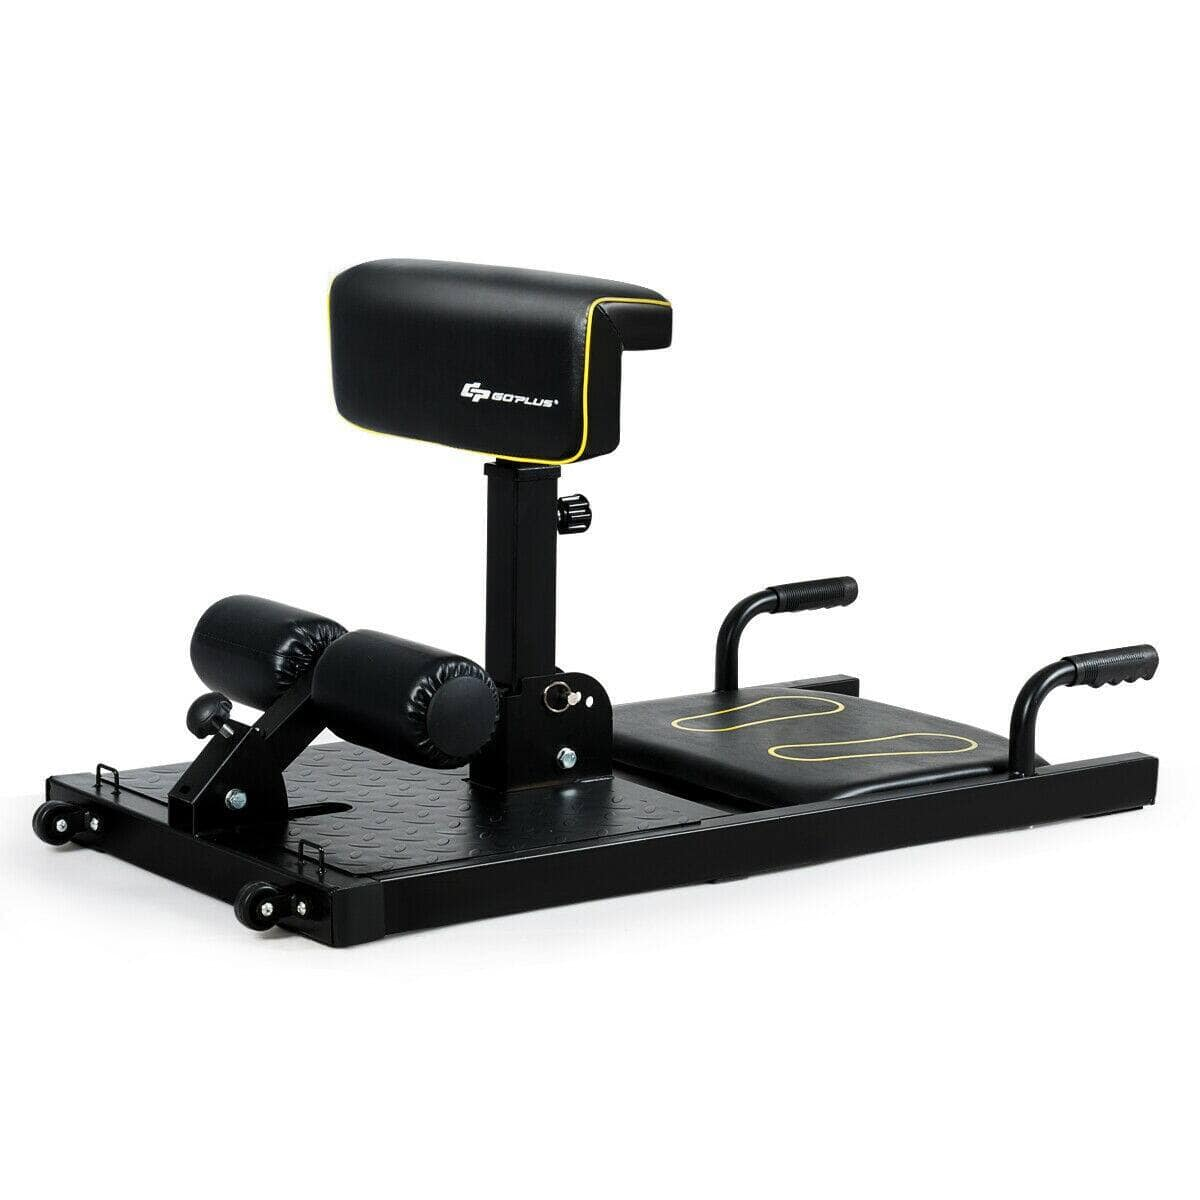 8-in-1 Home Gym Multifunction Squat Fitness Machine $112.95 + Free Shipping